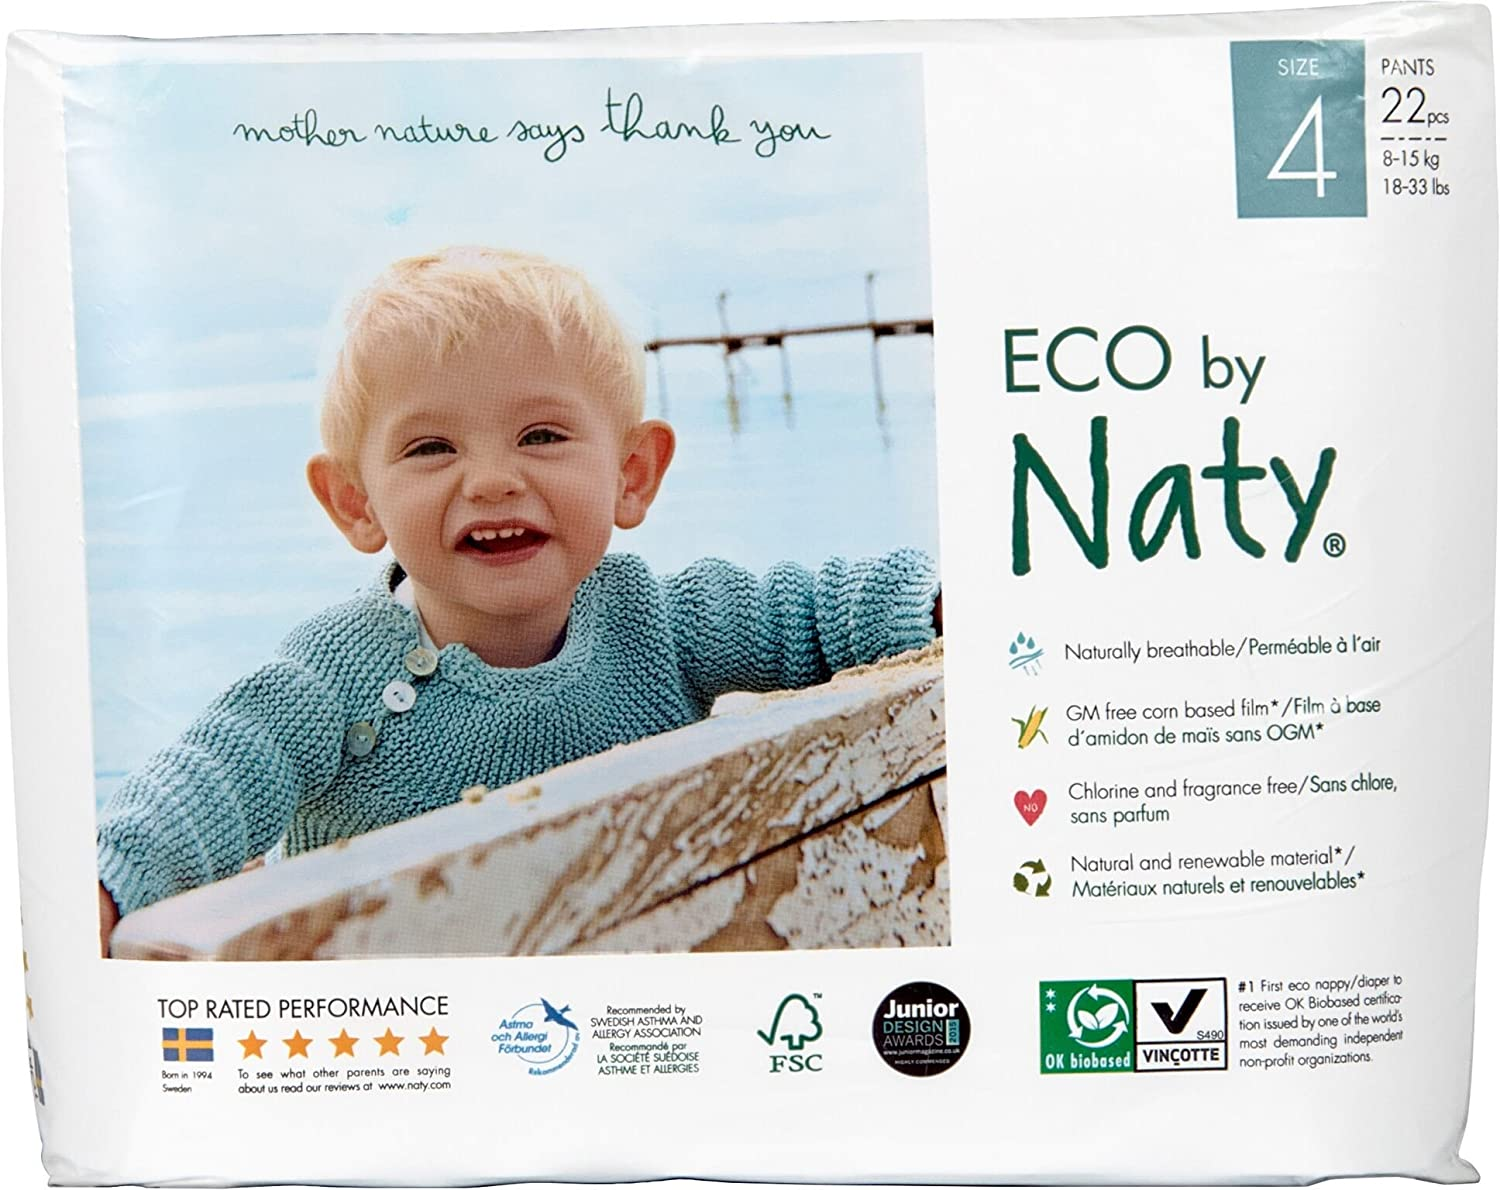 ECO By Naty Pull On Pants, Size 4, 4 packs of 22 (88 Count) Nature Babycare 244091